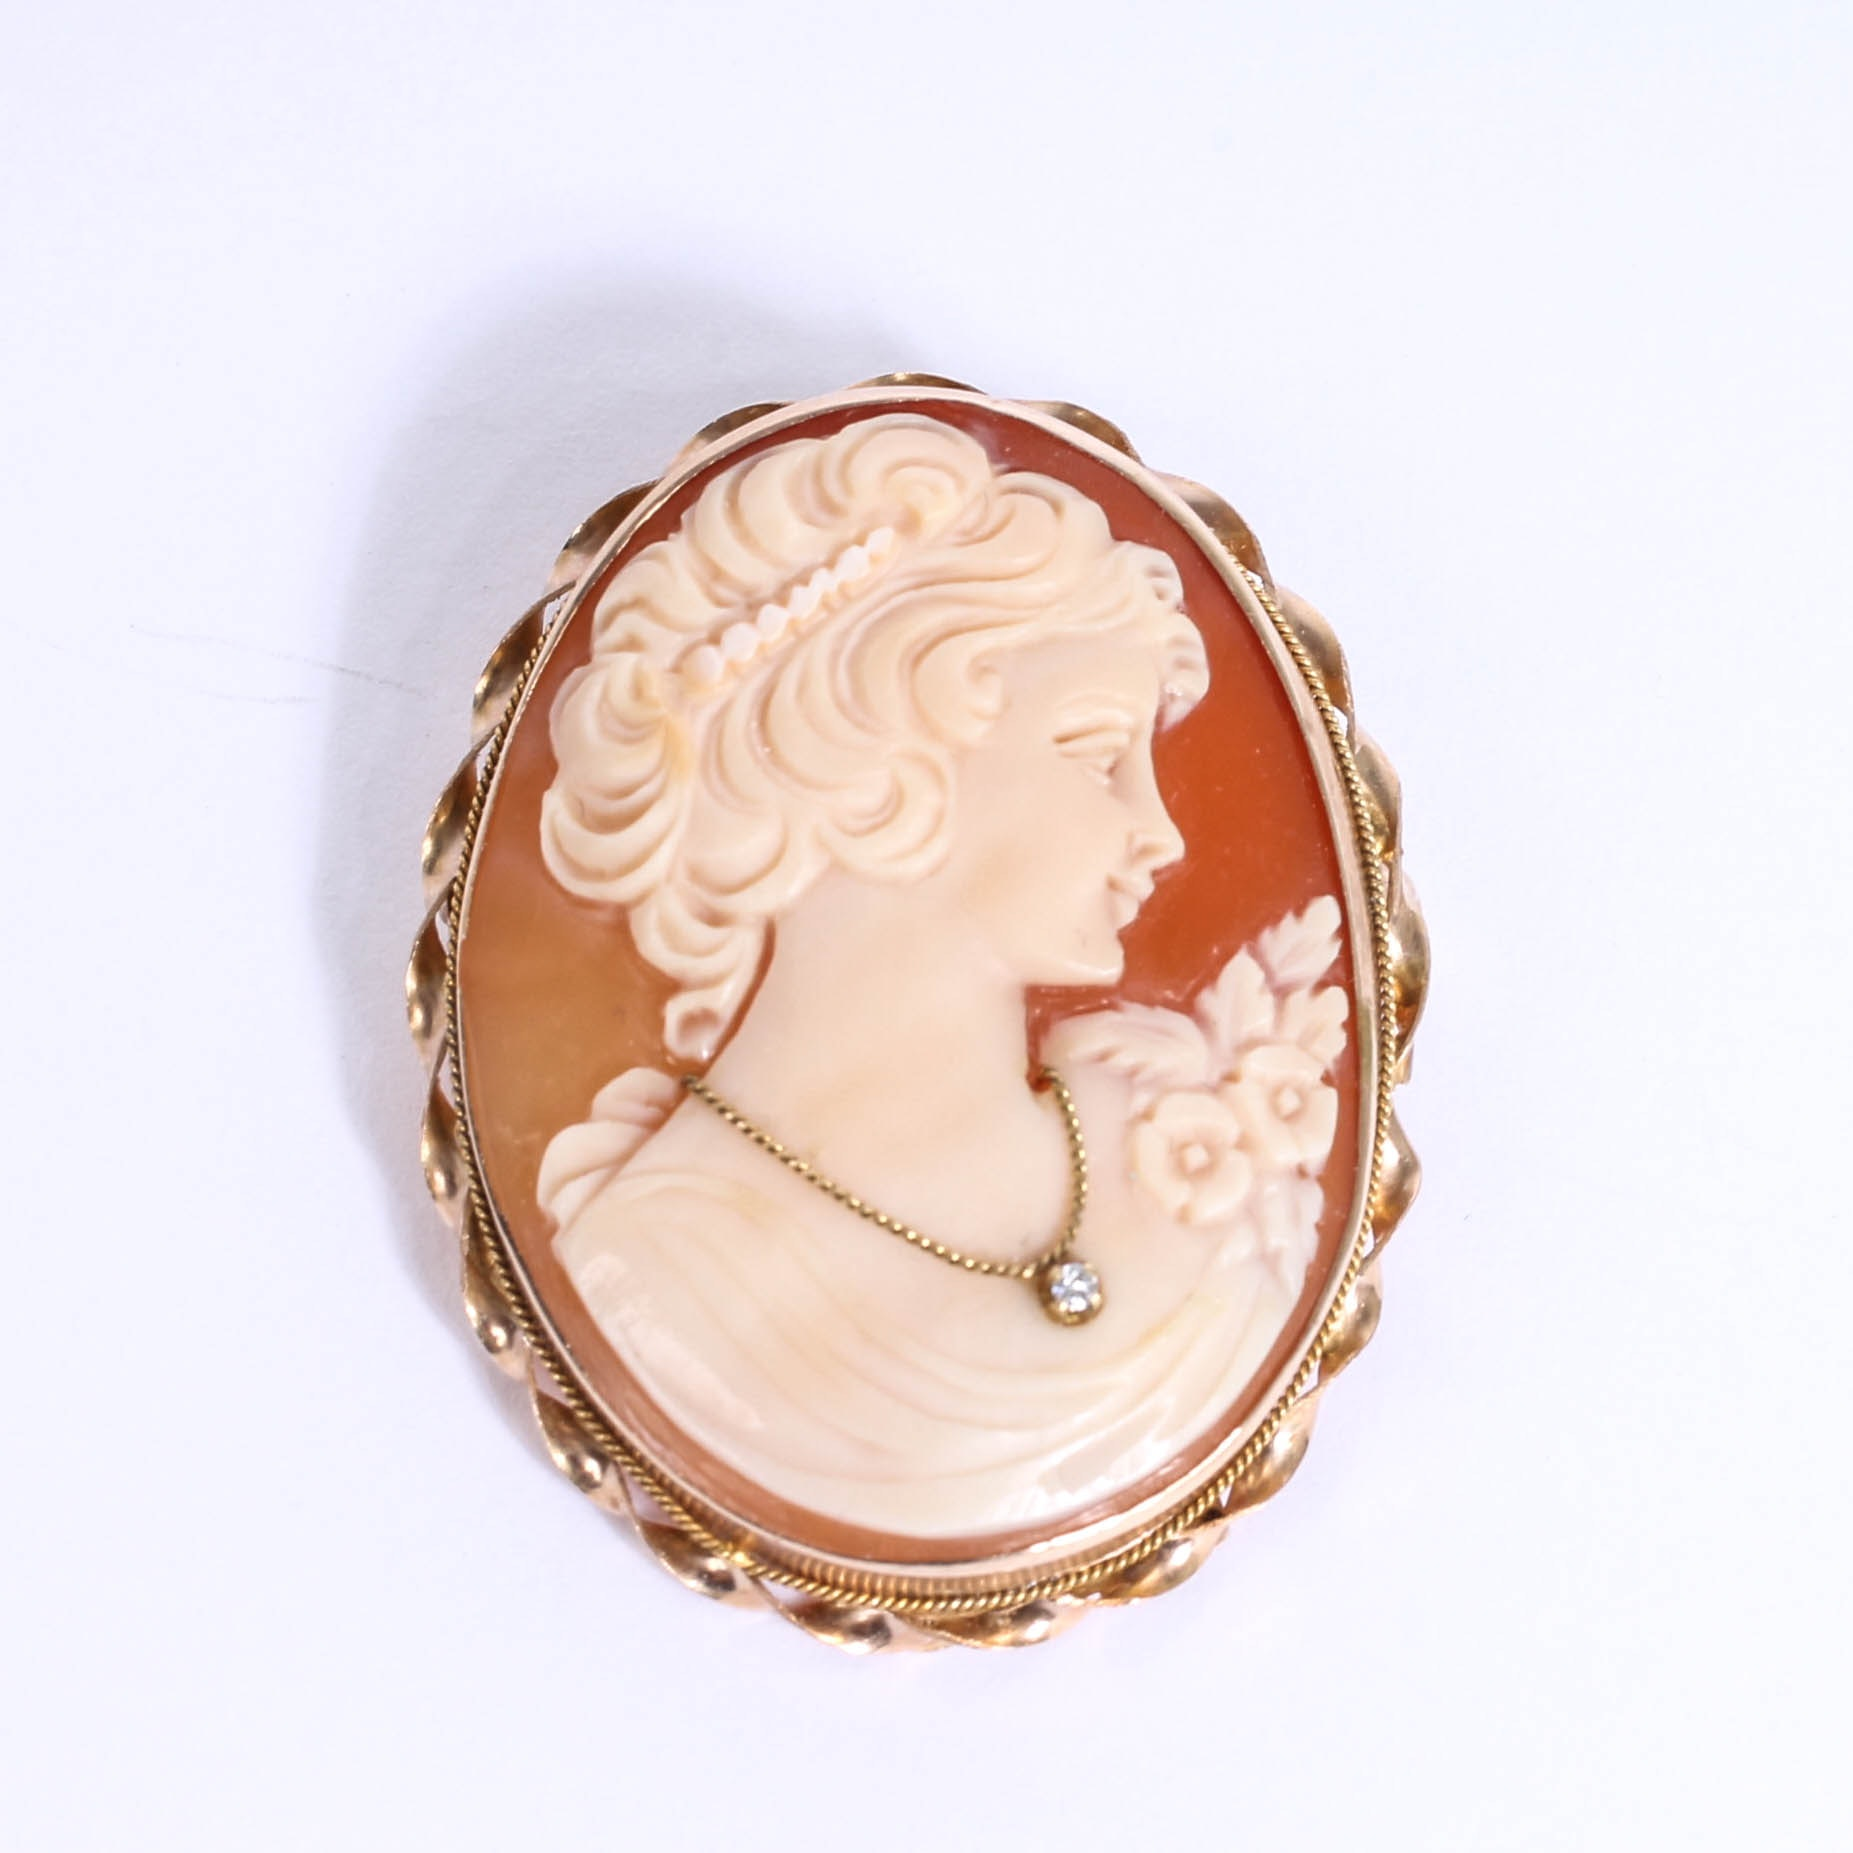 14K Yellow Gold Cameo and Diamond en Habille Brooch Pendant